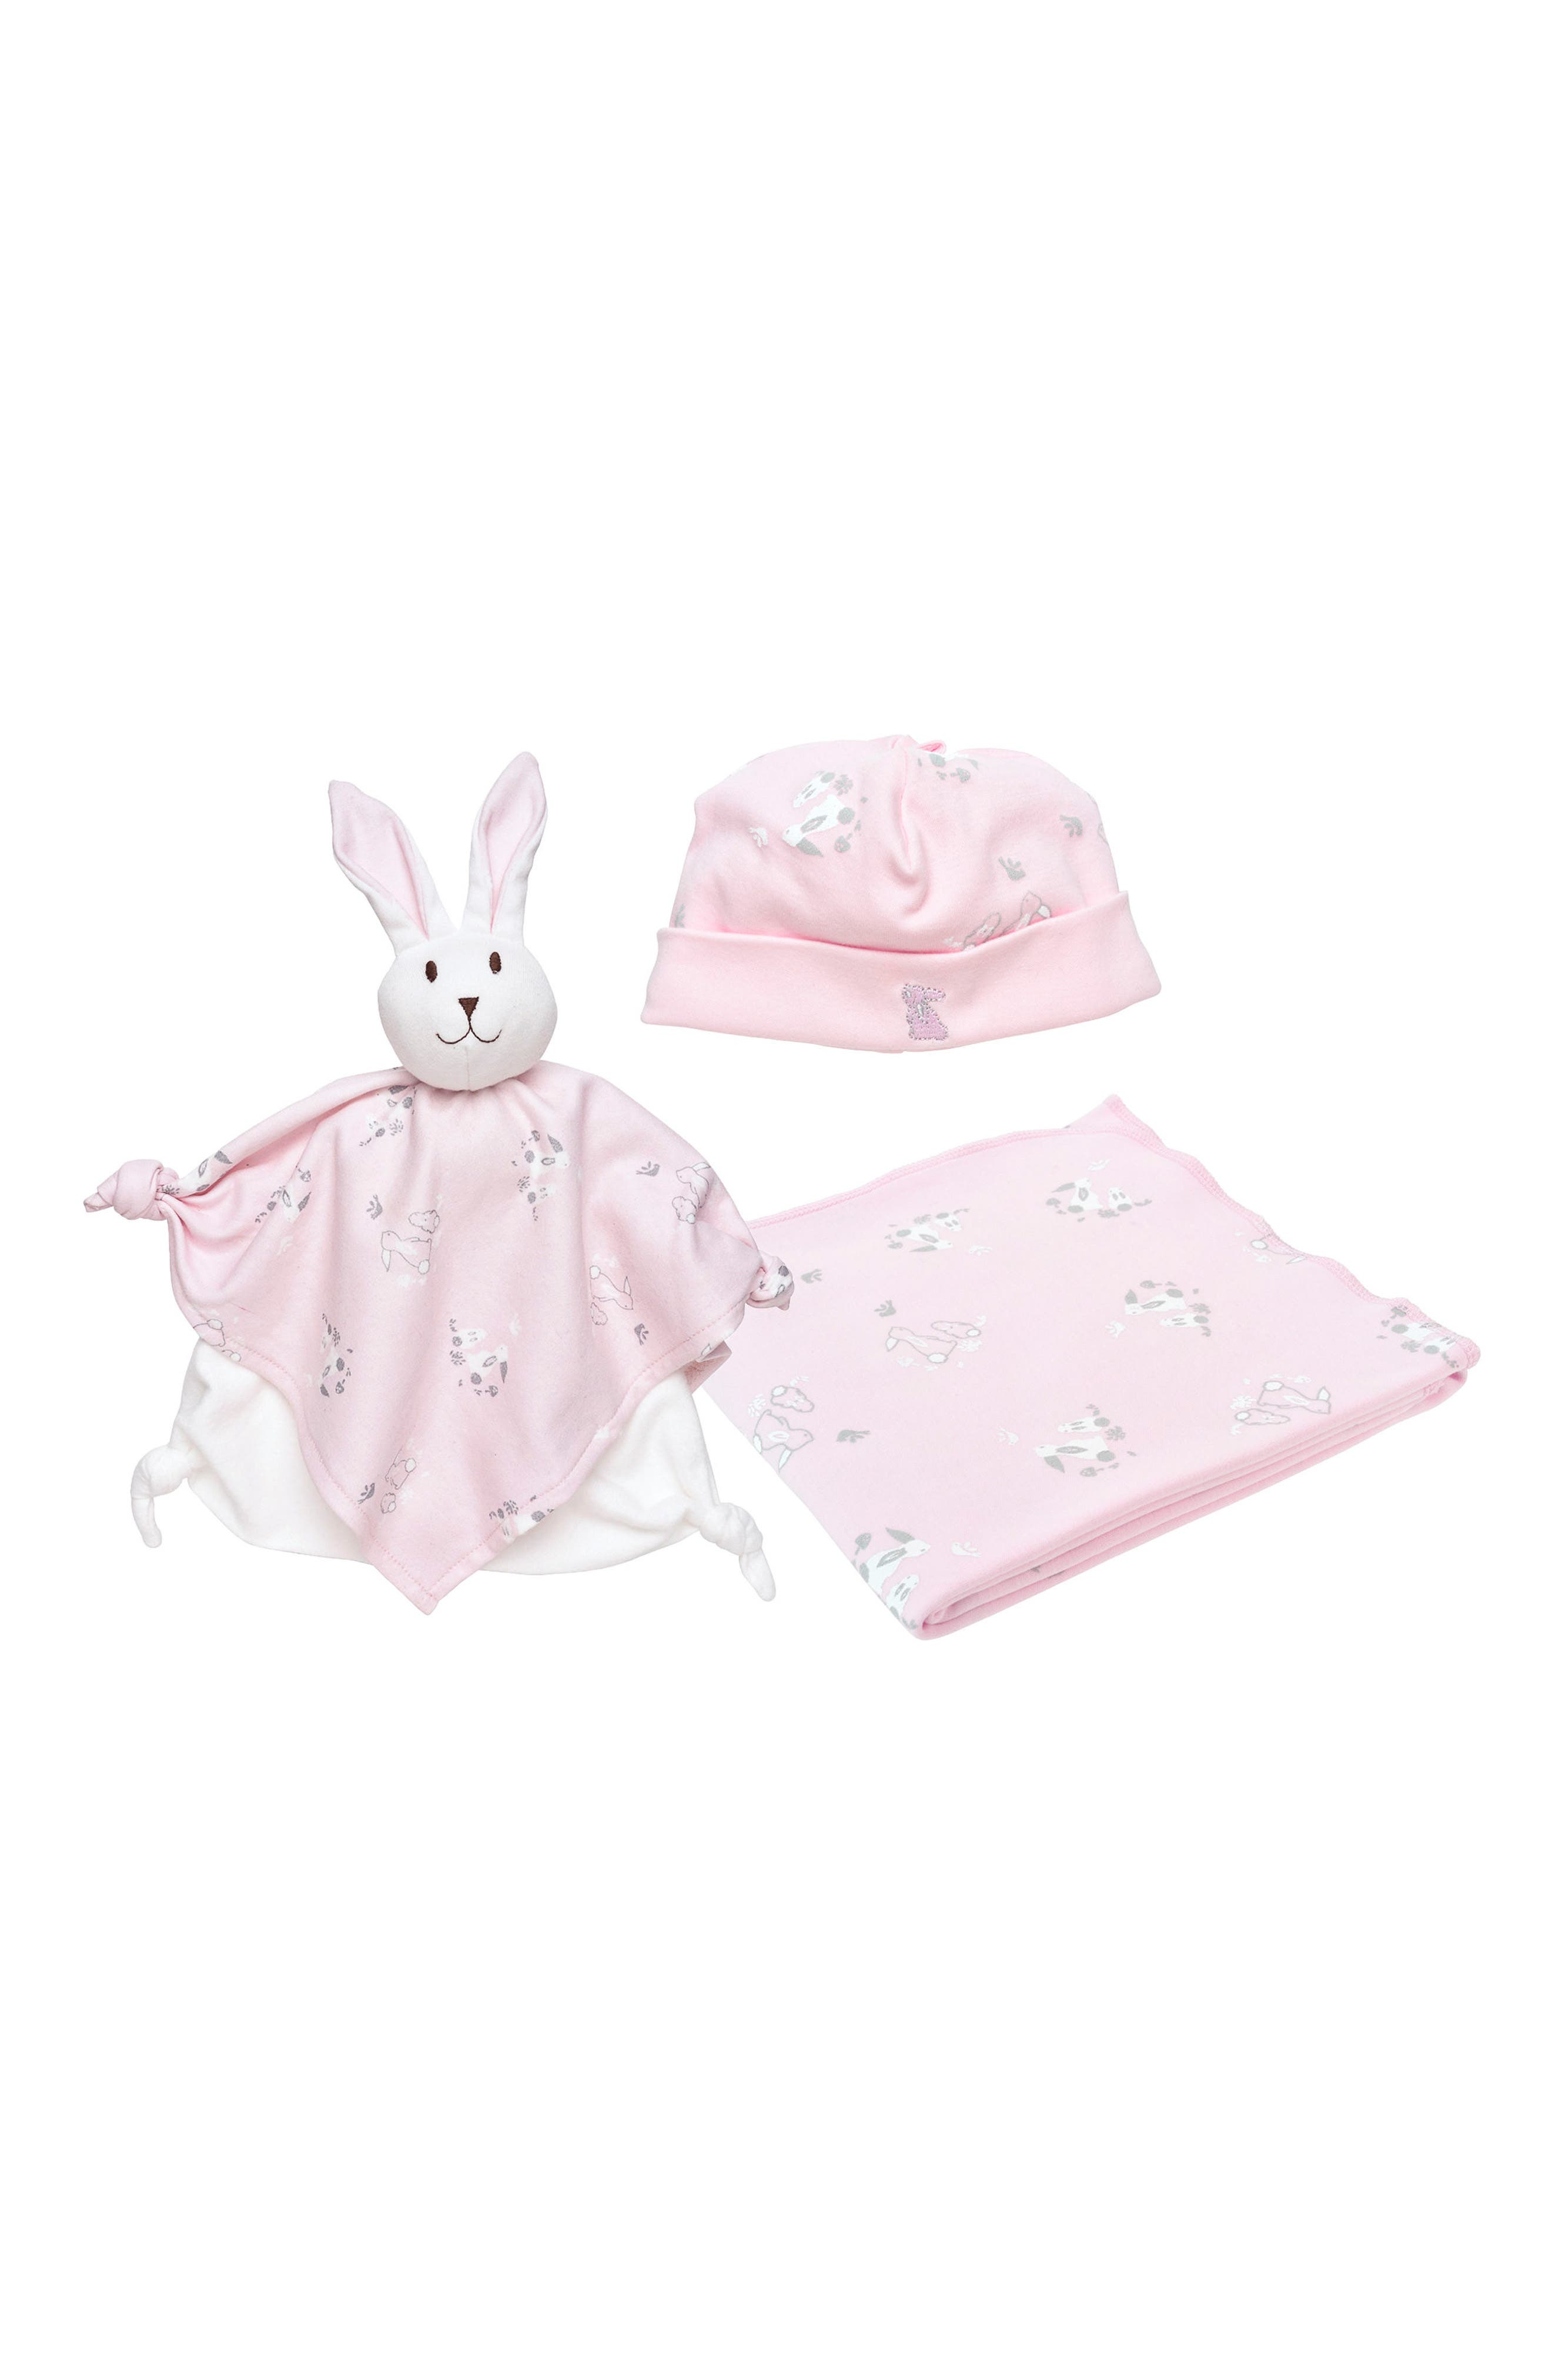 3-Piece Bunny Print Swaddle Blanket, Beanie & Lovey Toy Set,                         Main,                         color, Pink